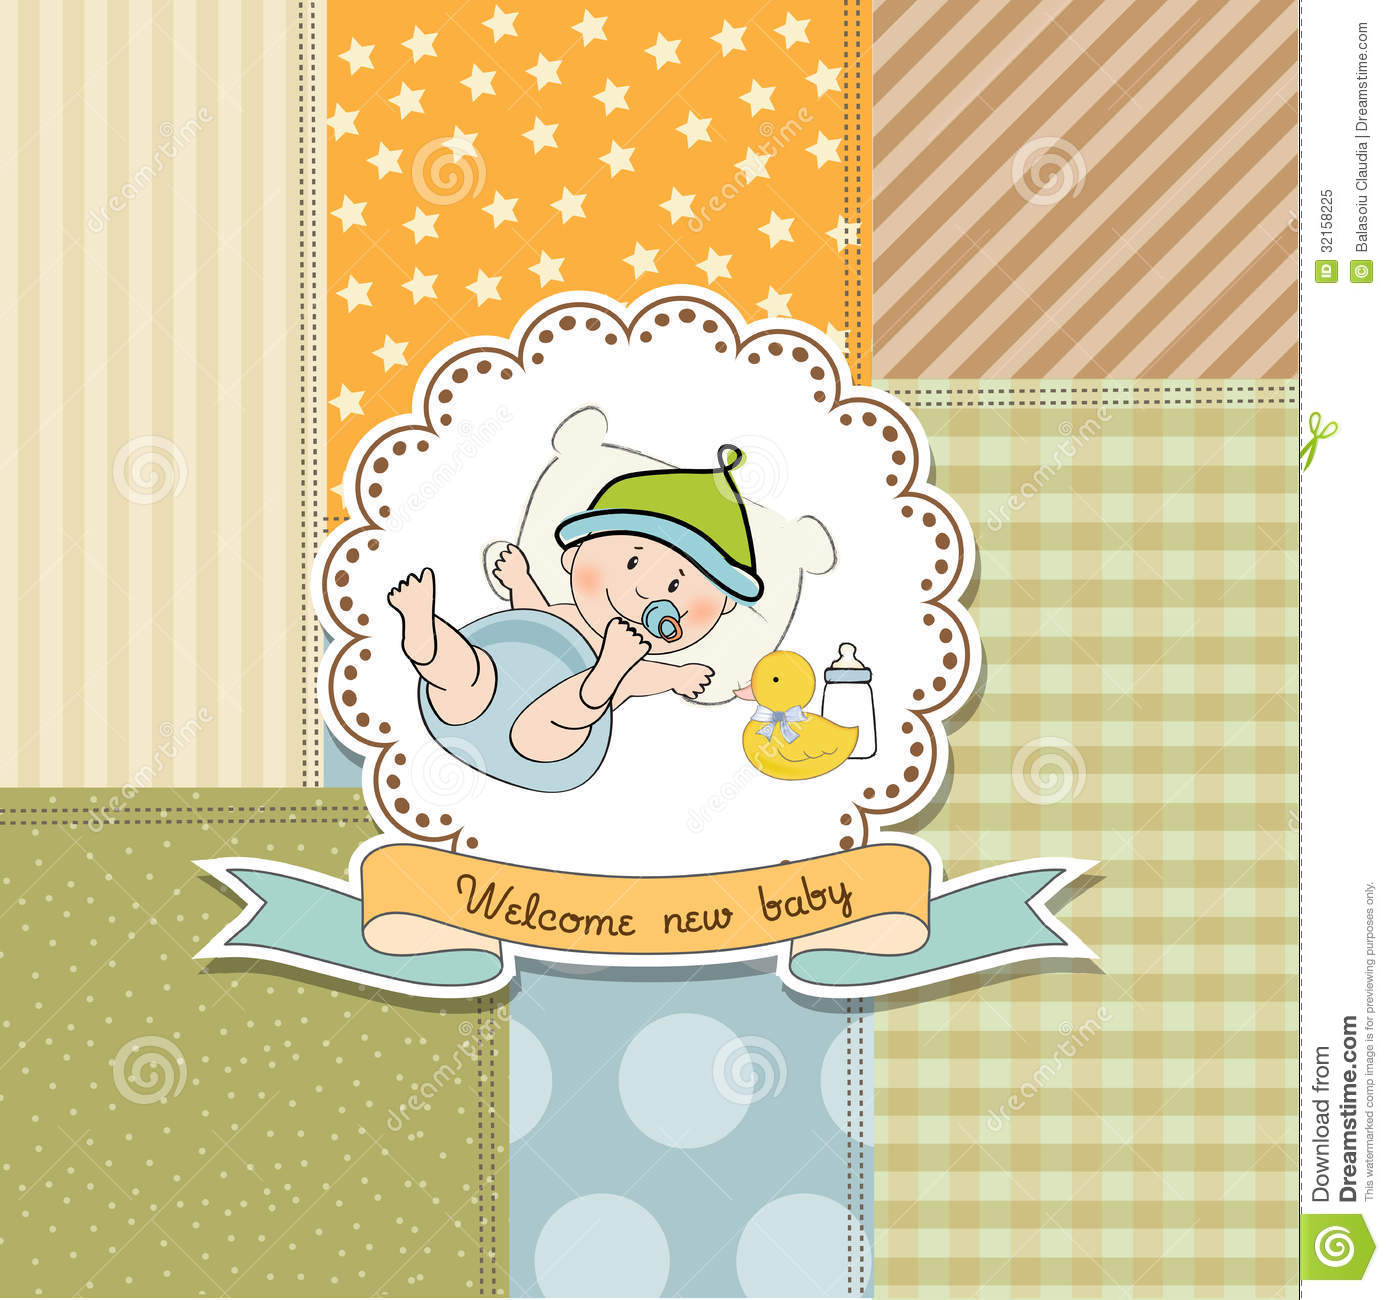 New Baby Announcement Card With Little Baby Royalty Free – Free Baby Announcement